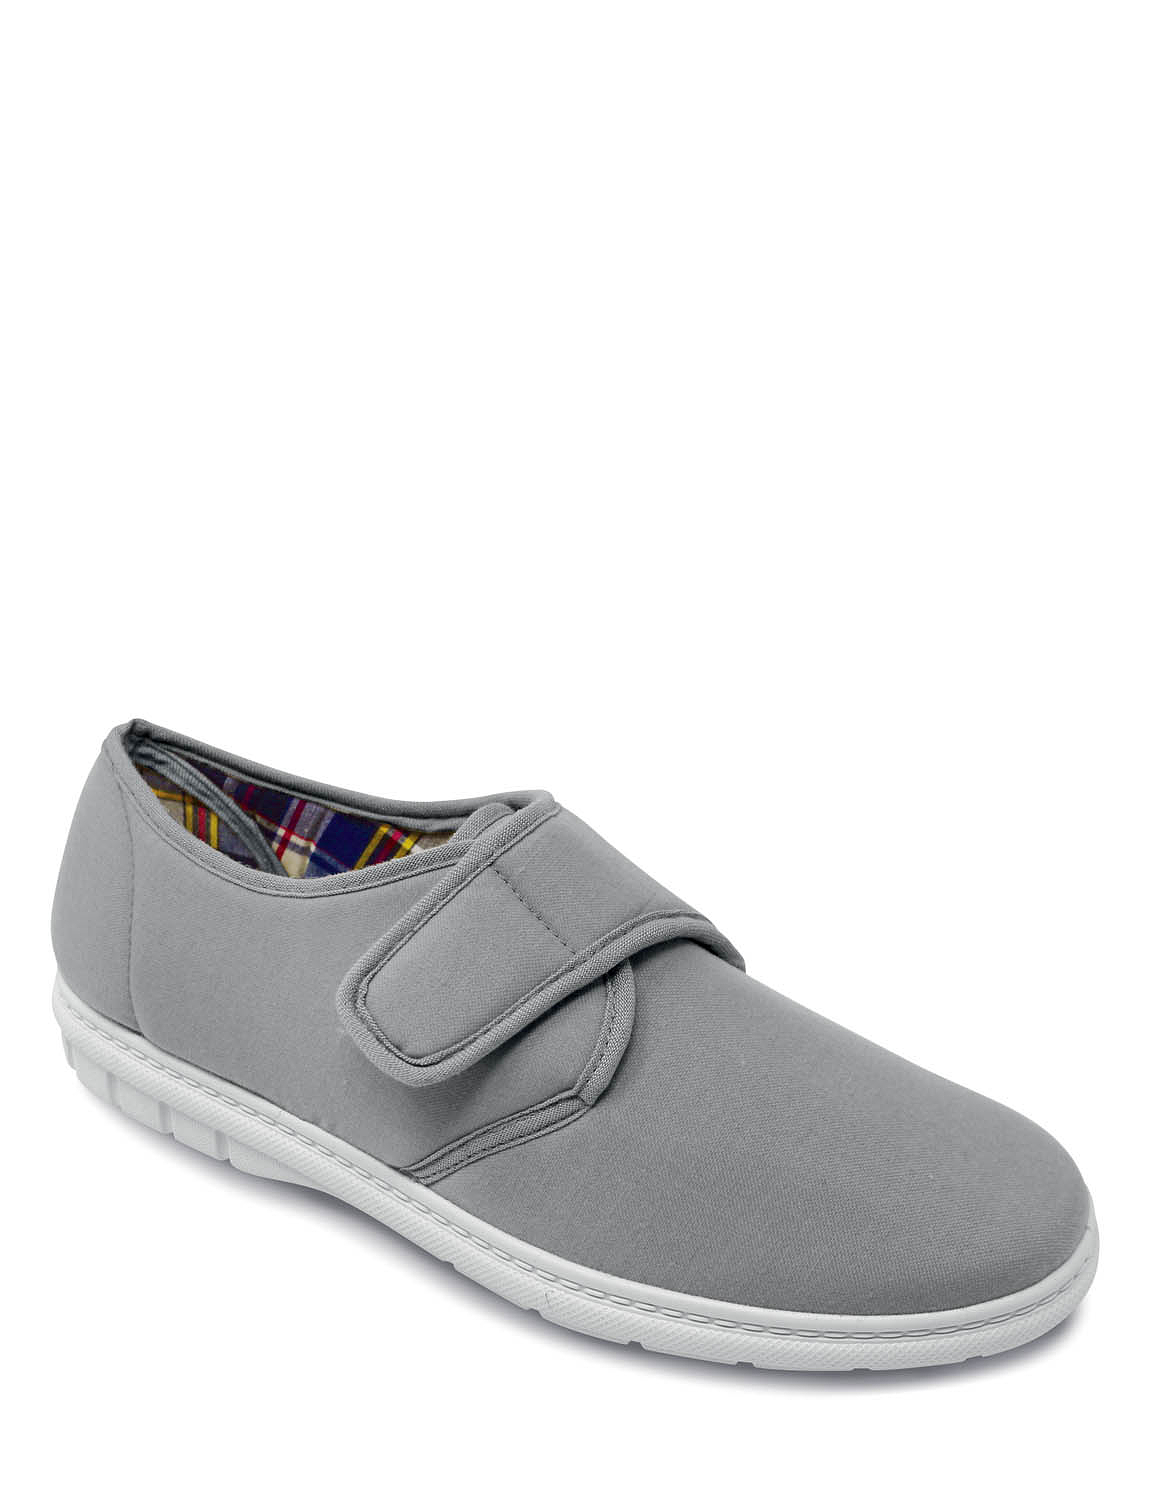 e0c8cdd143d53 Wide Fit Touch Fasten Canvas Shoes | Chums